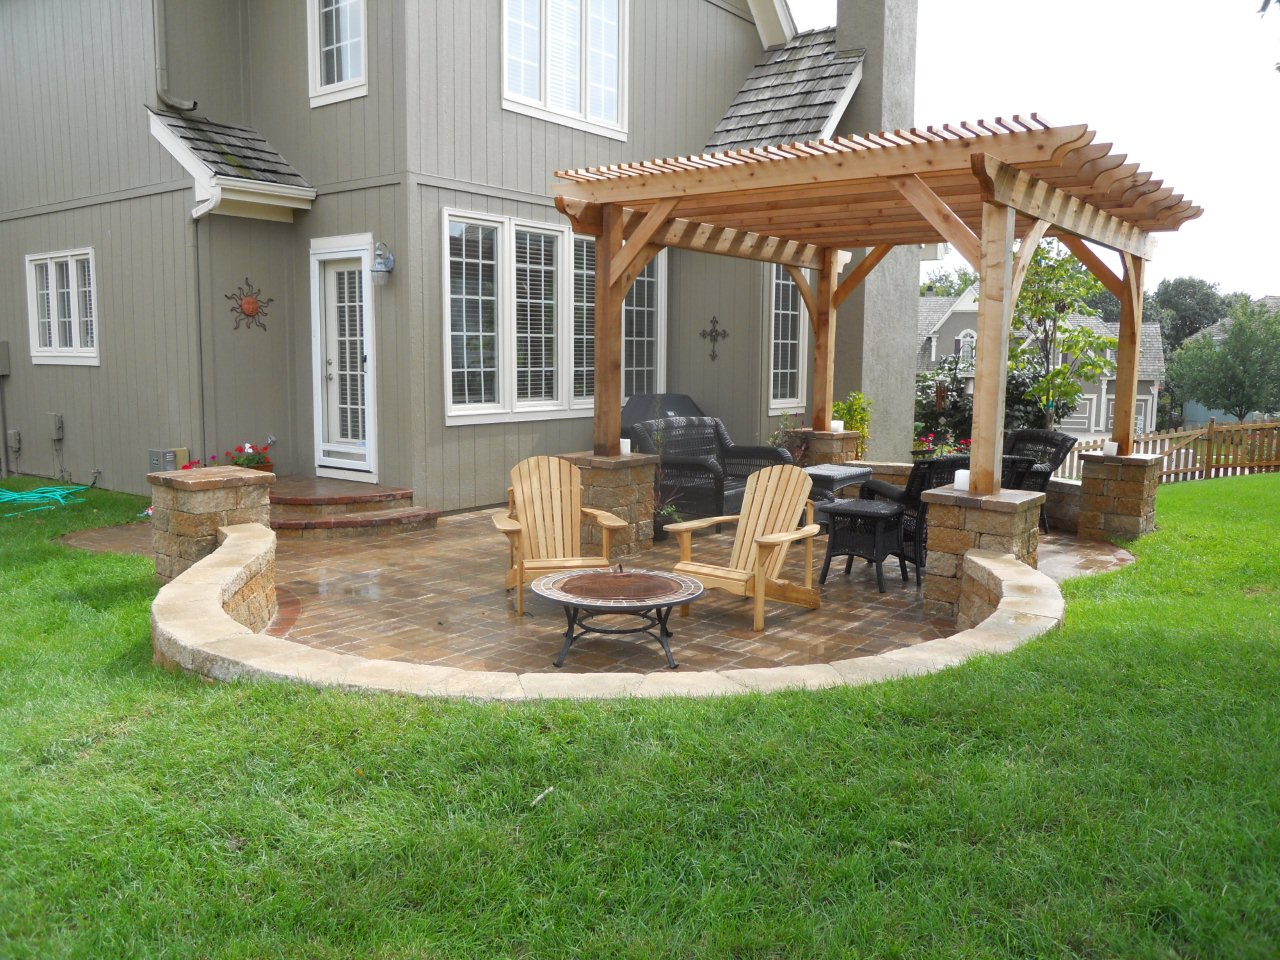 Backyard Landscaping Ideas Gazebo | Mystical Designs and Tags on small backyard makeovers, small outdoor living area ideas, small garden ponds ideas patio, circle with small back yard gazebo, small balcony garden ideas, landscaping ideas around a gazebo, small patio gazebo ideas designs, garden gazebo, backyard fire pit with gazebo, small garden pavilion, small kitchen design ideas, shabby chic decorating ideas gazebo, small outdoor living spaces ideas, small patio gazebo in backyard, small deck with gazebo, small front yard landscaping ideas, backyards decorating ideas for gazebo,